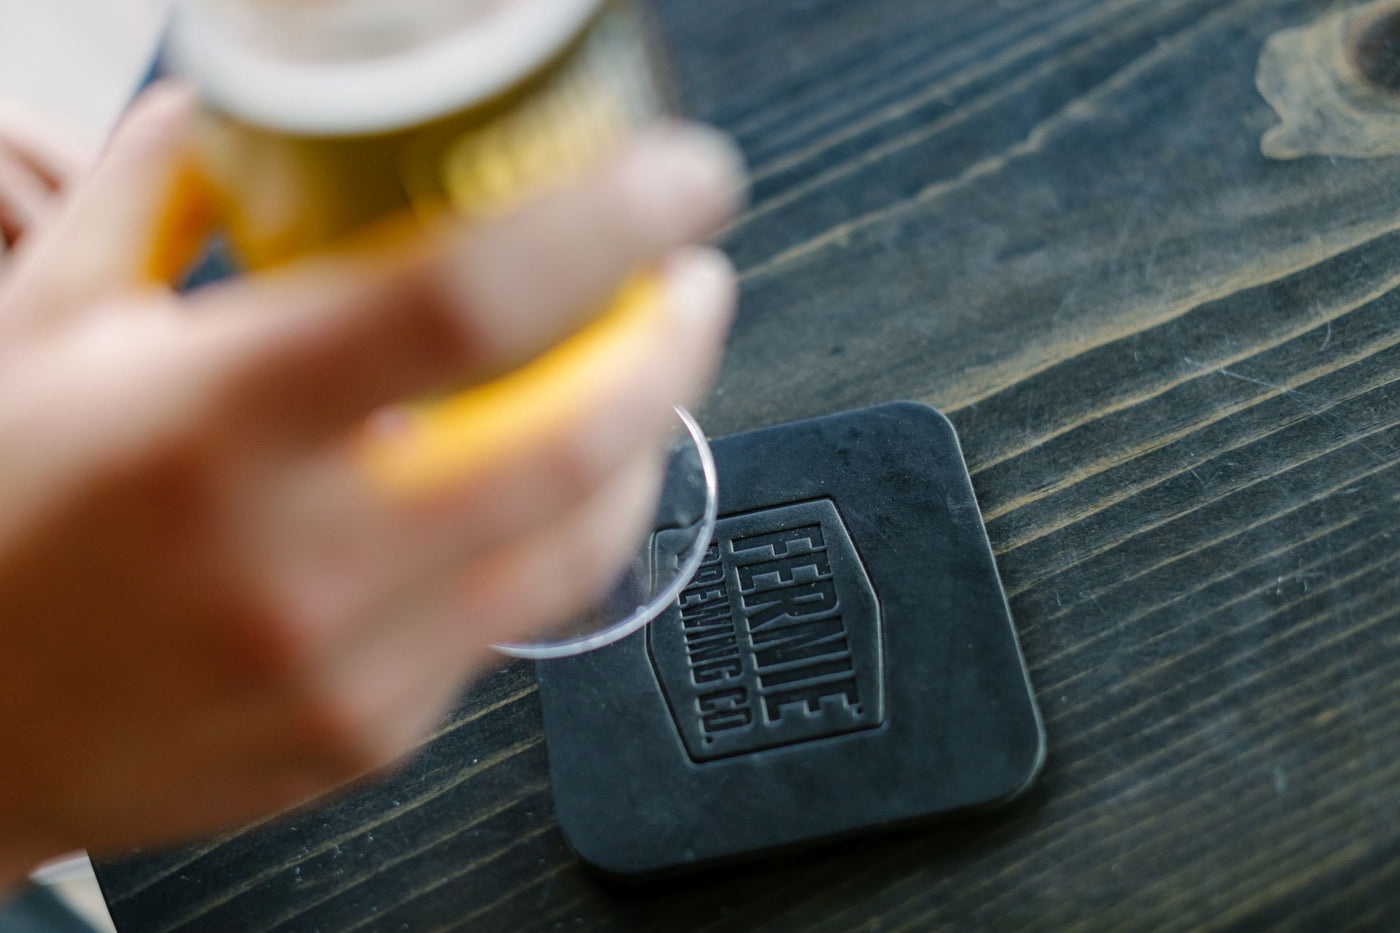 Glass of beer being lifted off of leather coaster.